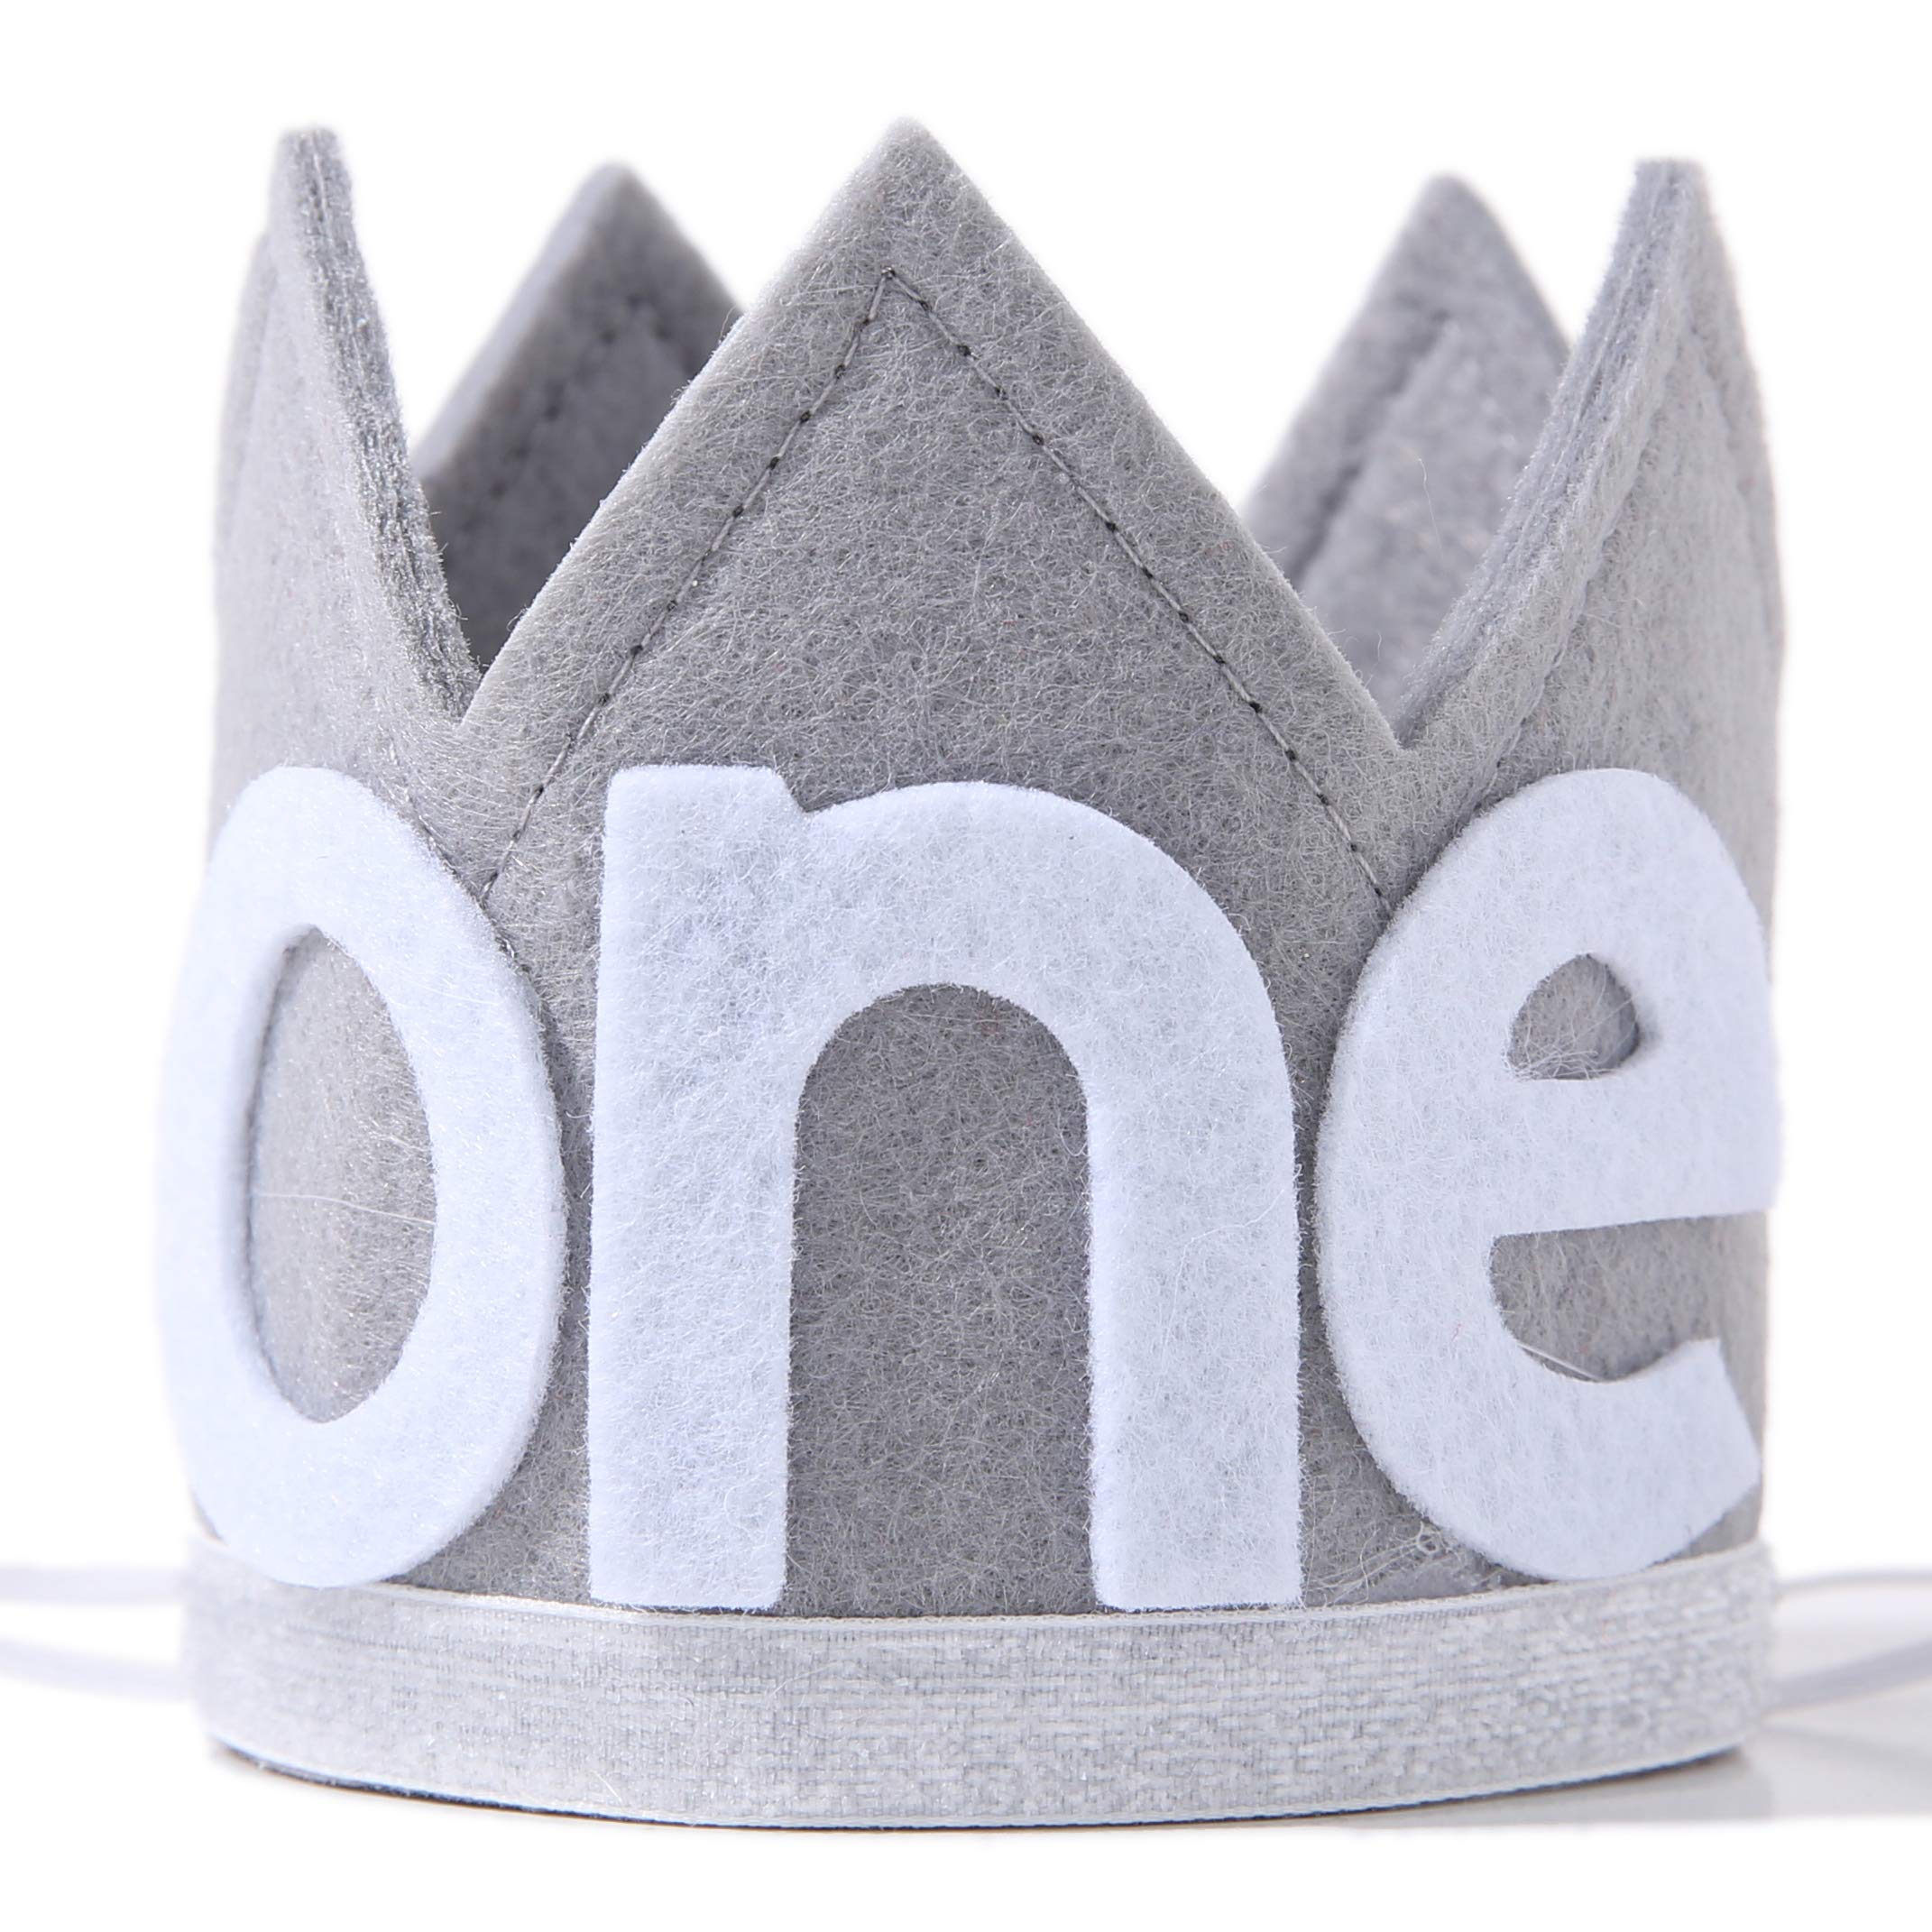 Baby ONE Crown for 1st Birthday - First Birthday Party Headband,Boy or Girl Glitter Crown, Newborn Photography Prop, Prince or Princess Souvenir and Gifts(Gray Crown Hat)